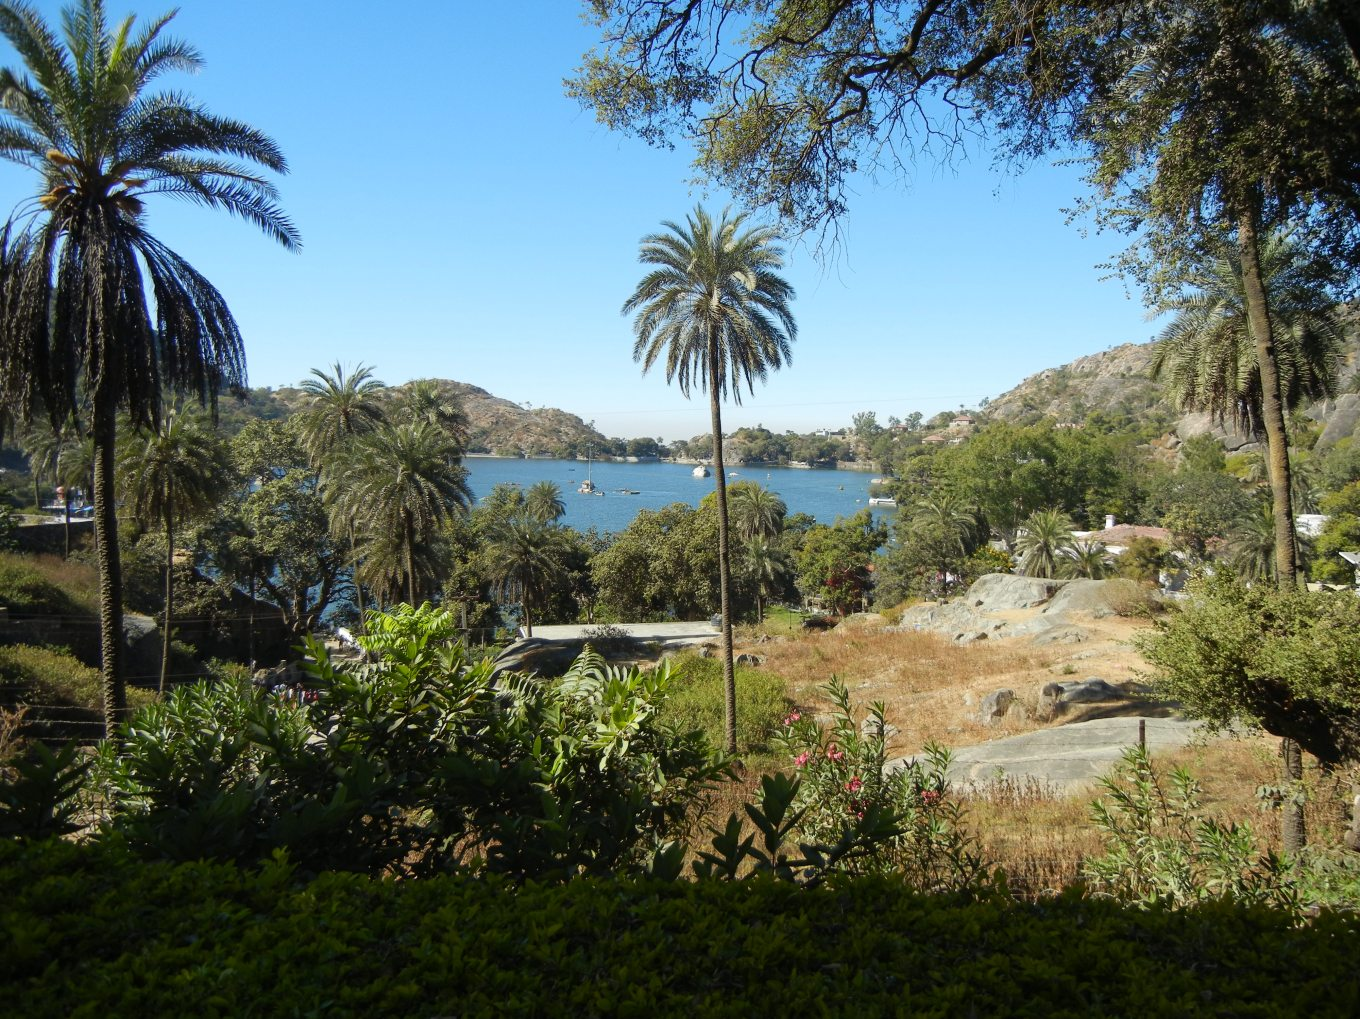 Nakki_Lake_from_Mount_Abu_Wildlife_Sanctuary.JPG